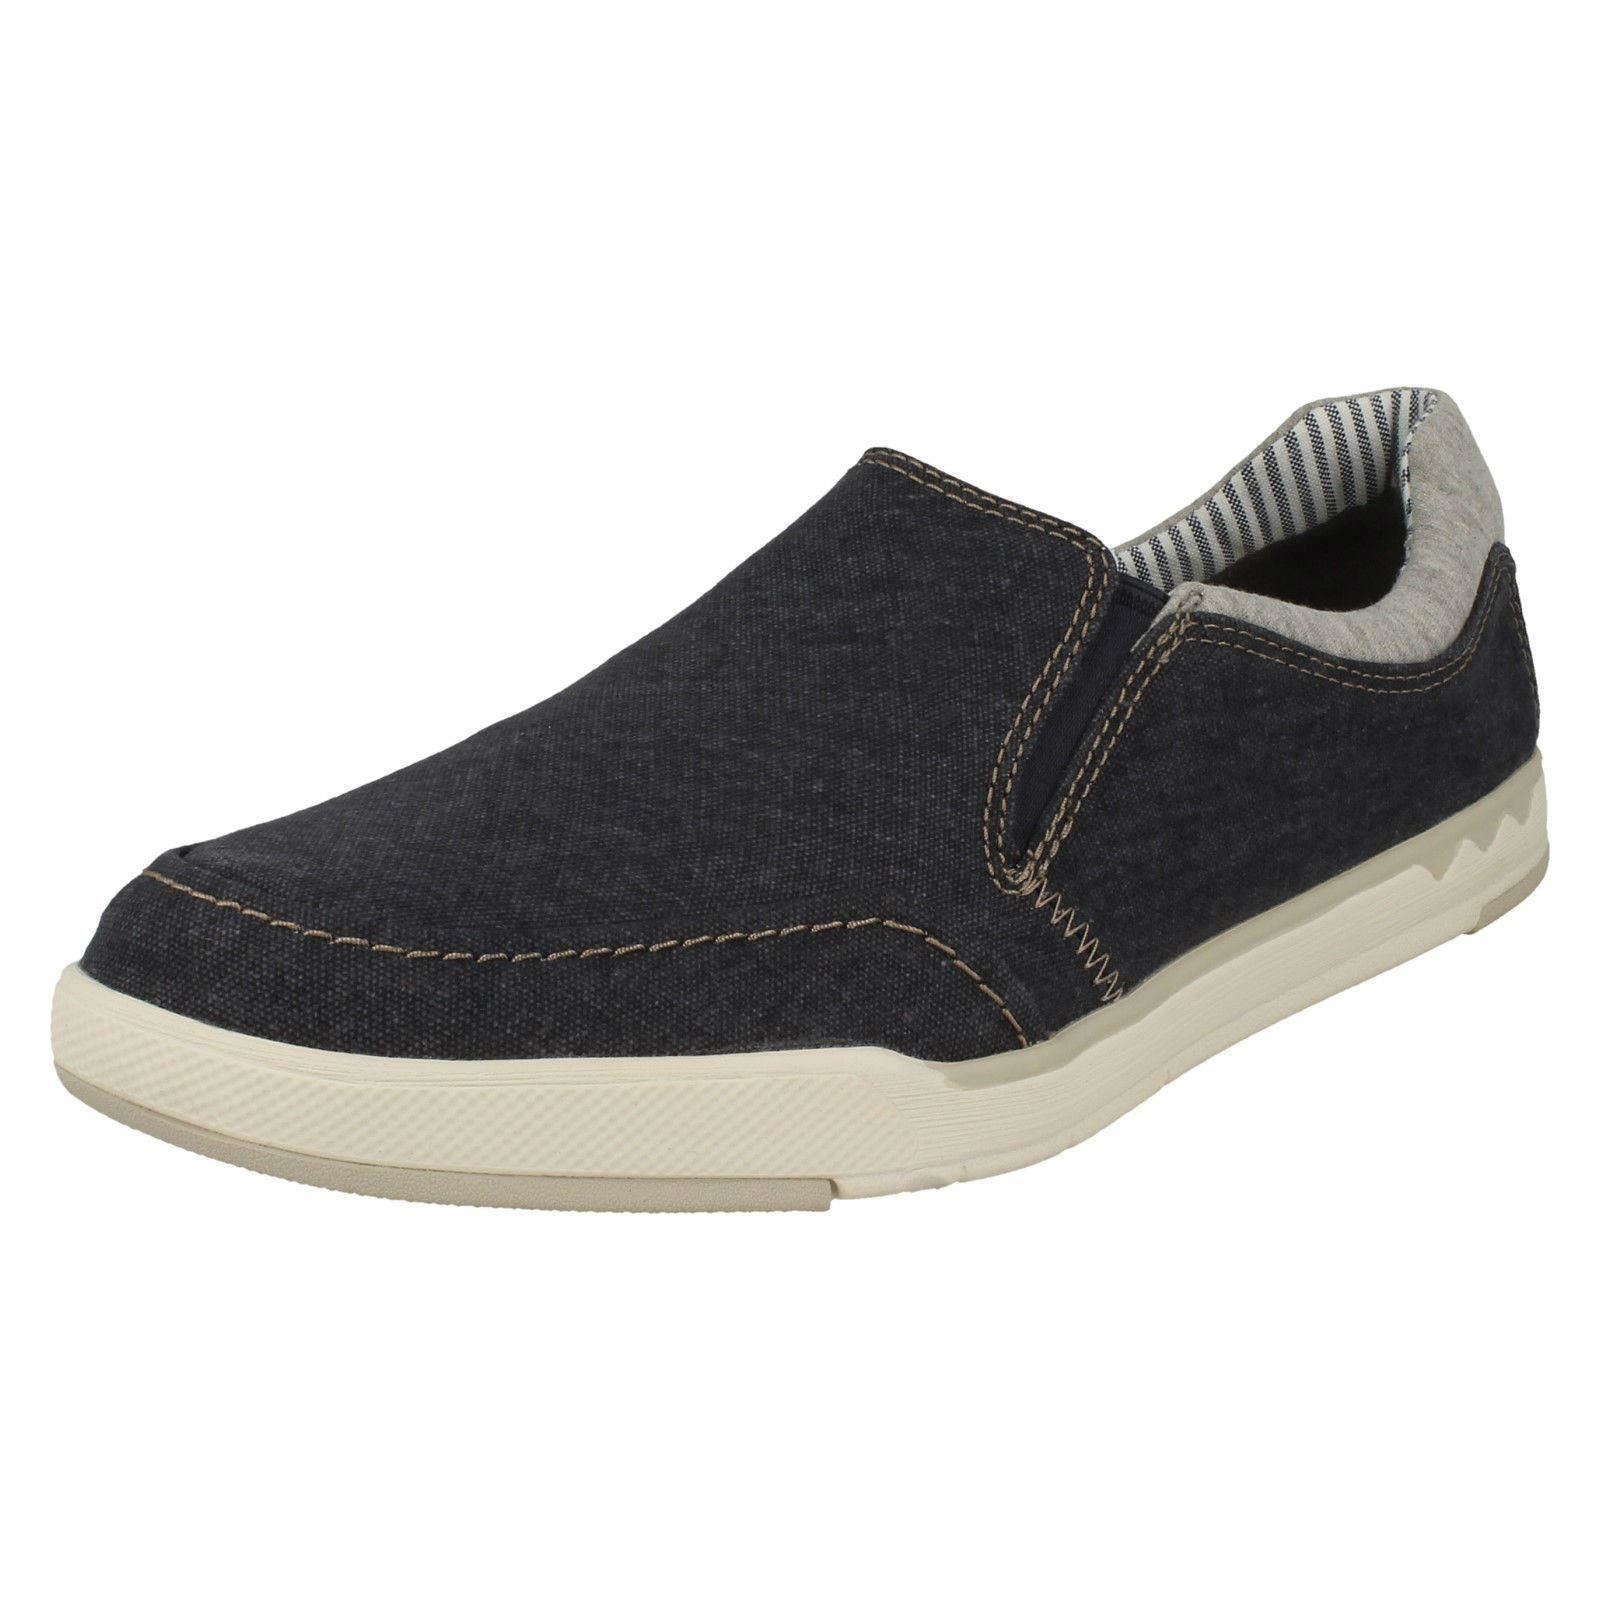 b2480dc342 Mens Clarks Casual Canvas Shoes Step Isle Slip UK 8.5 Navy (blue) G. About  this product. Picture 1 of 8  Picture 2 of 8 ...